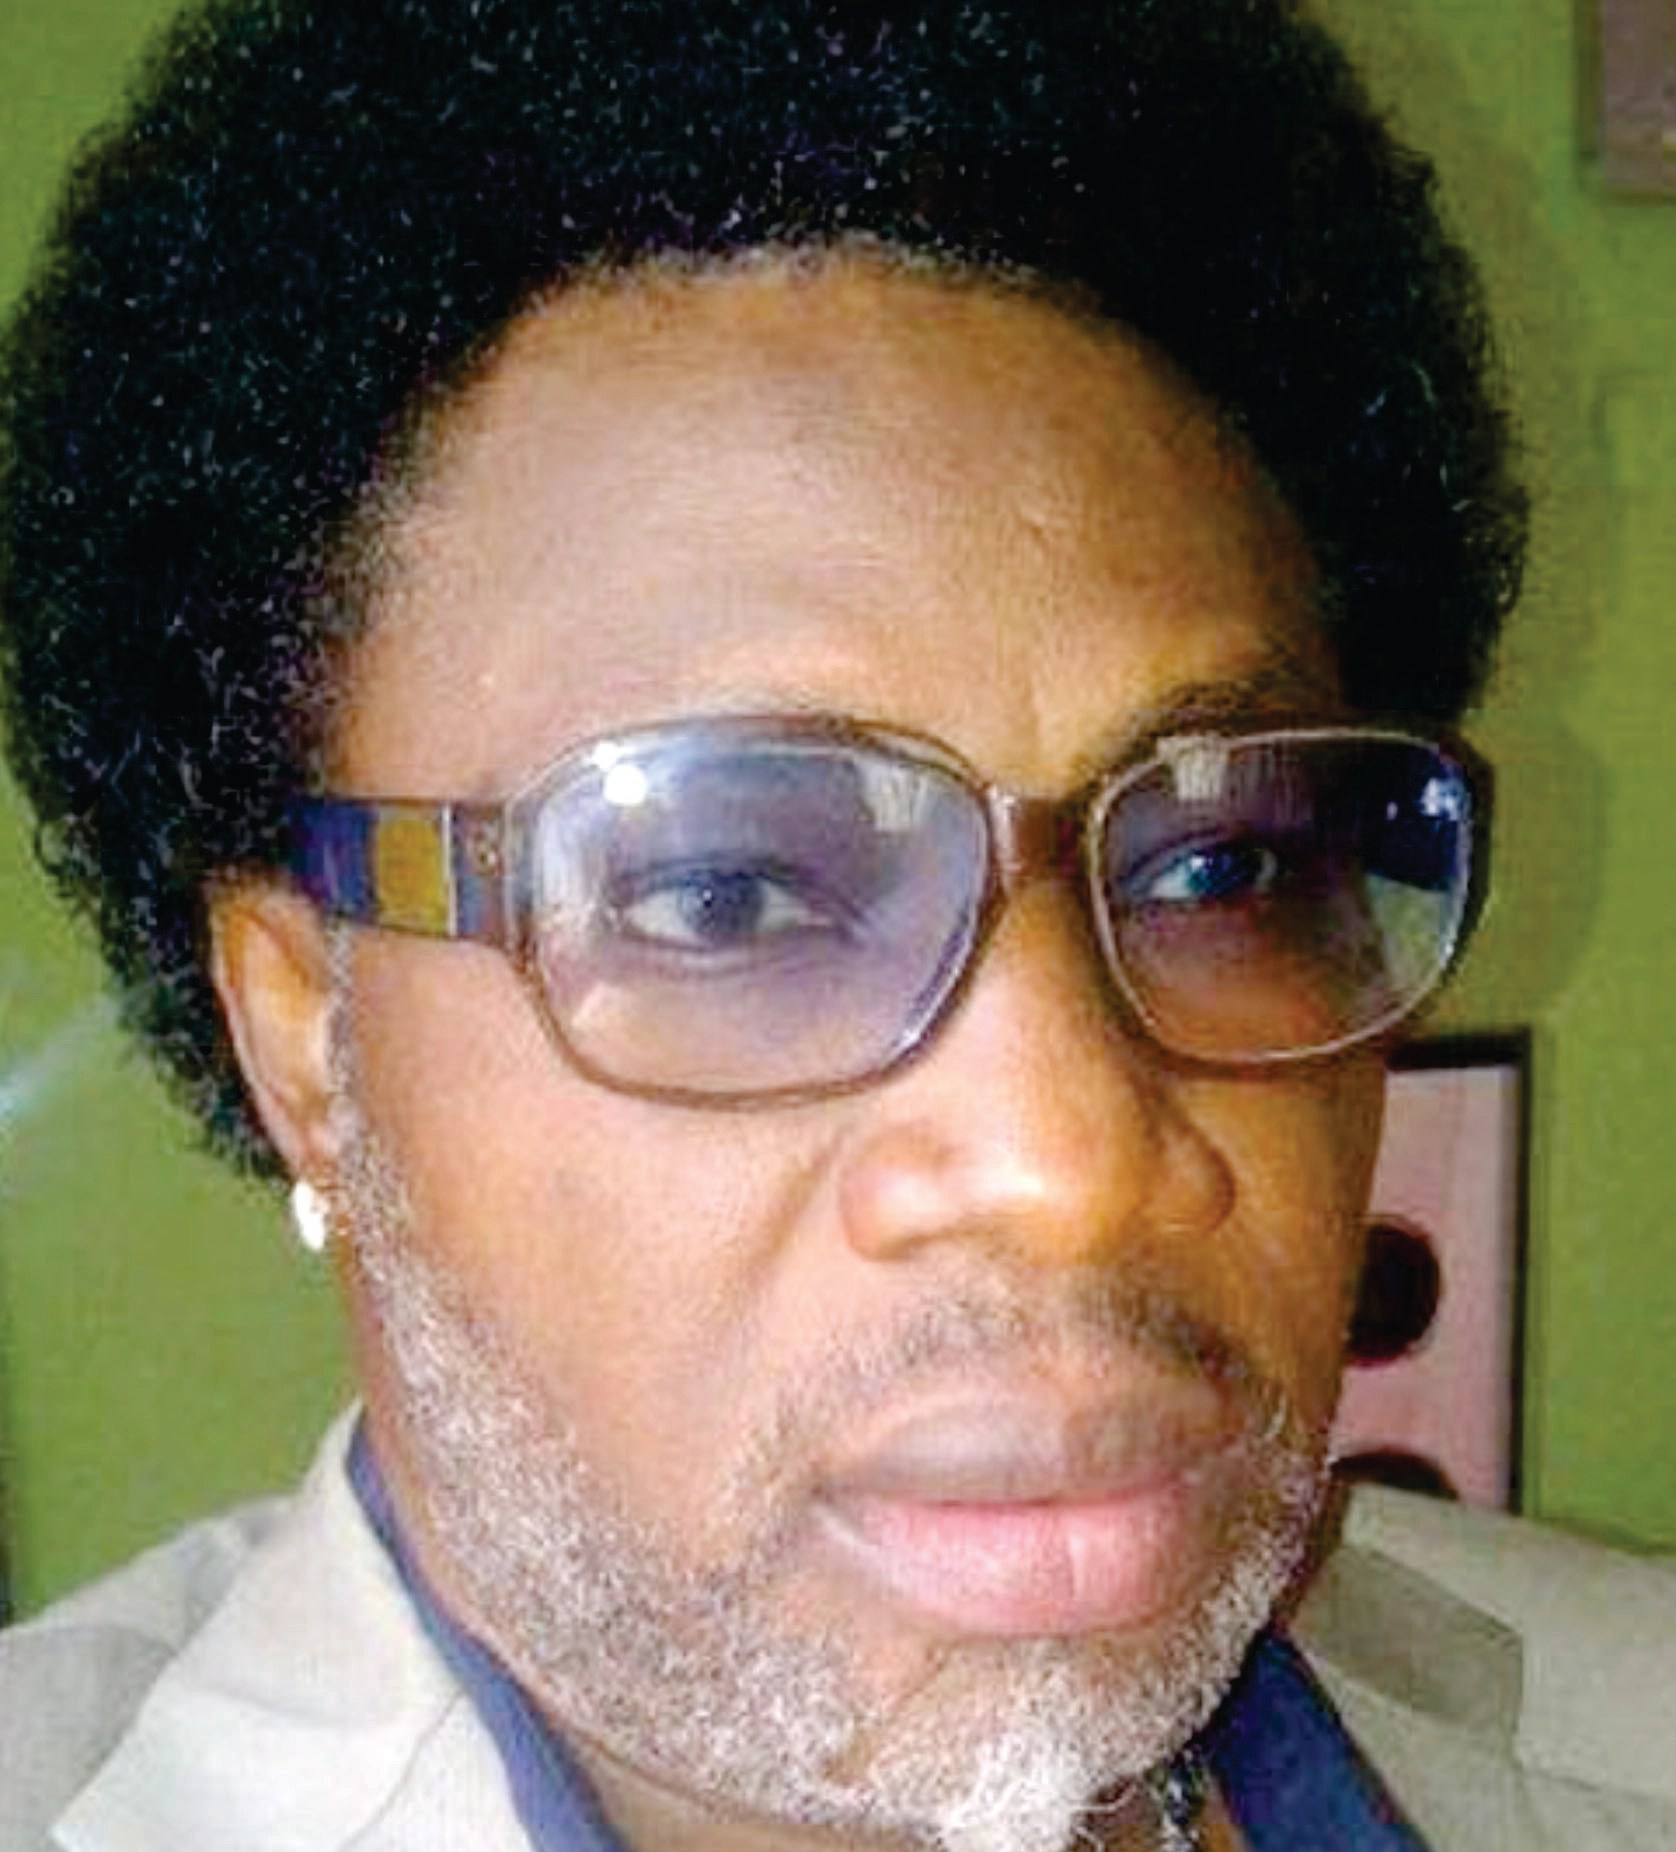 Popular Nollywood actor adopts barbing, hairdressing as a means of livelihood